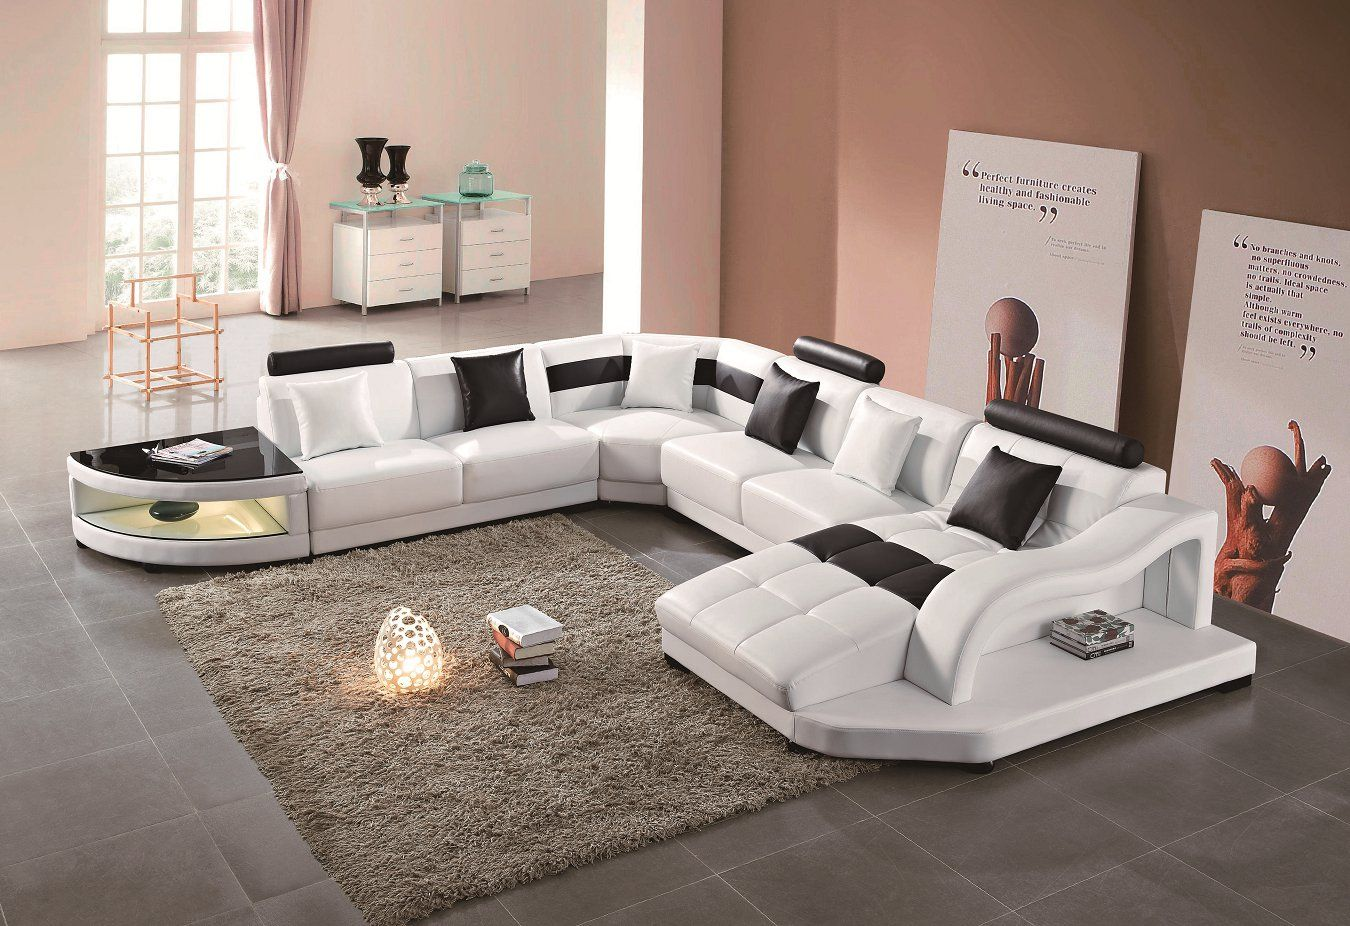 Pin von Molan auf Modern Leather Sofa | Pinterest